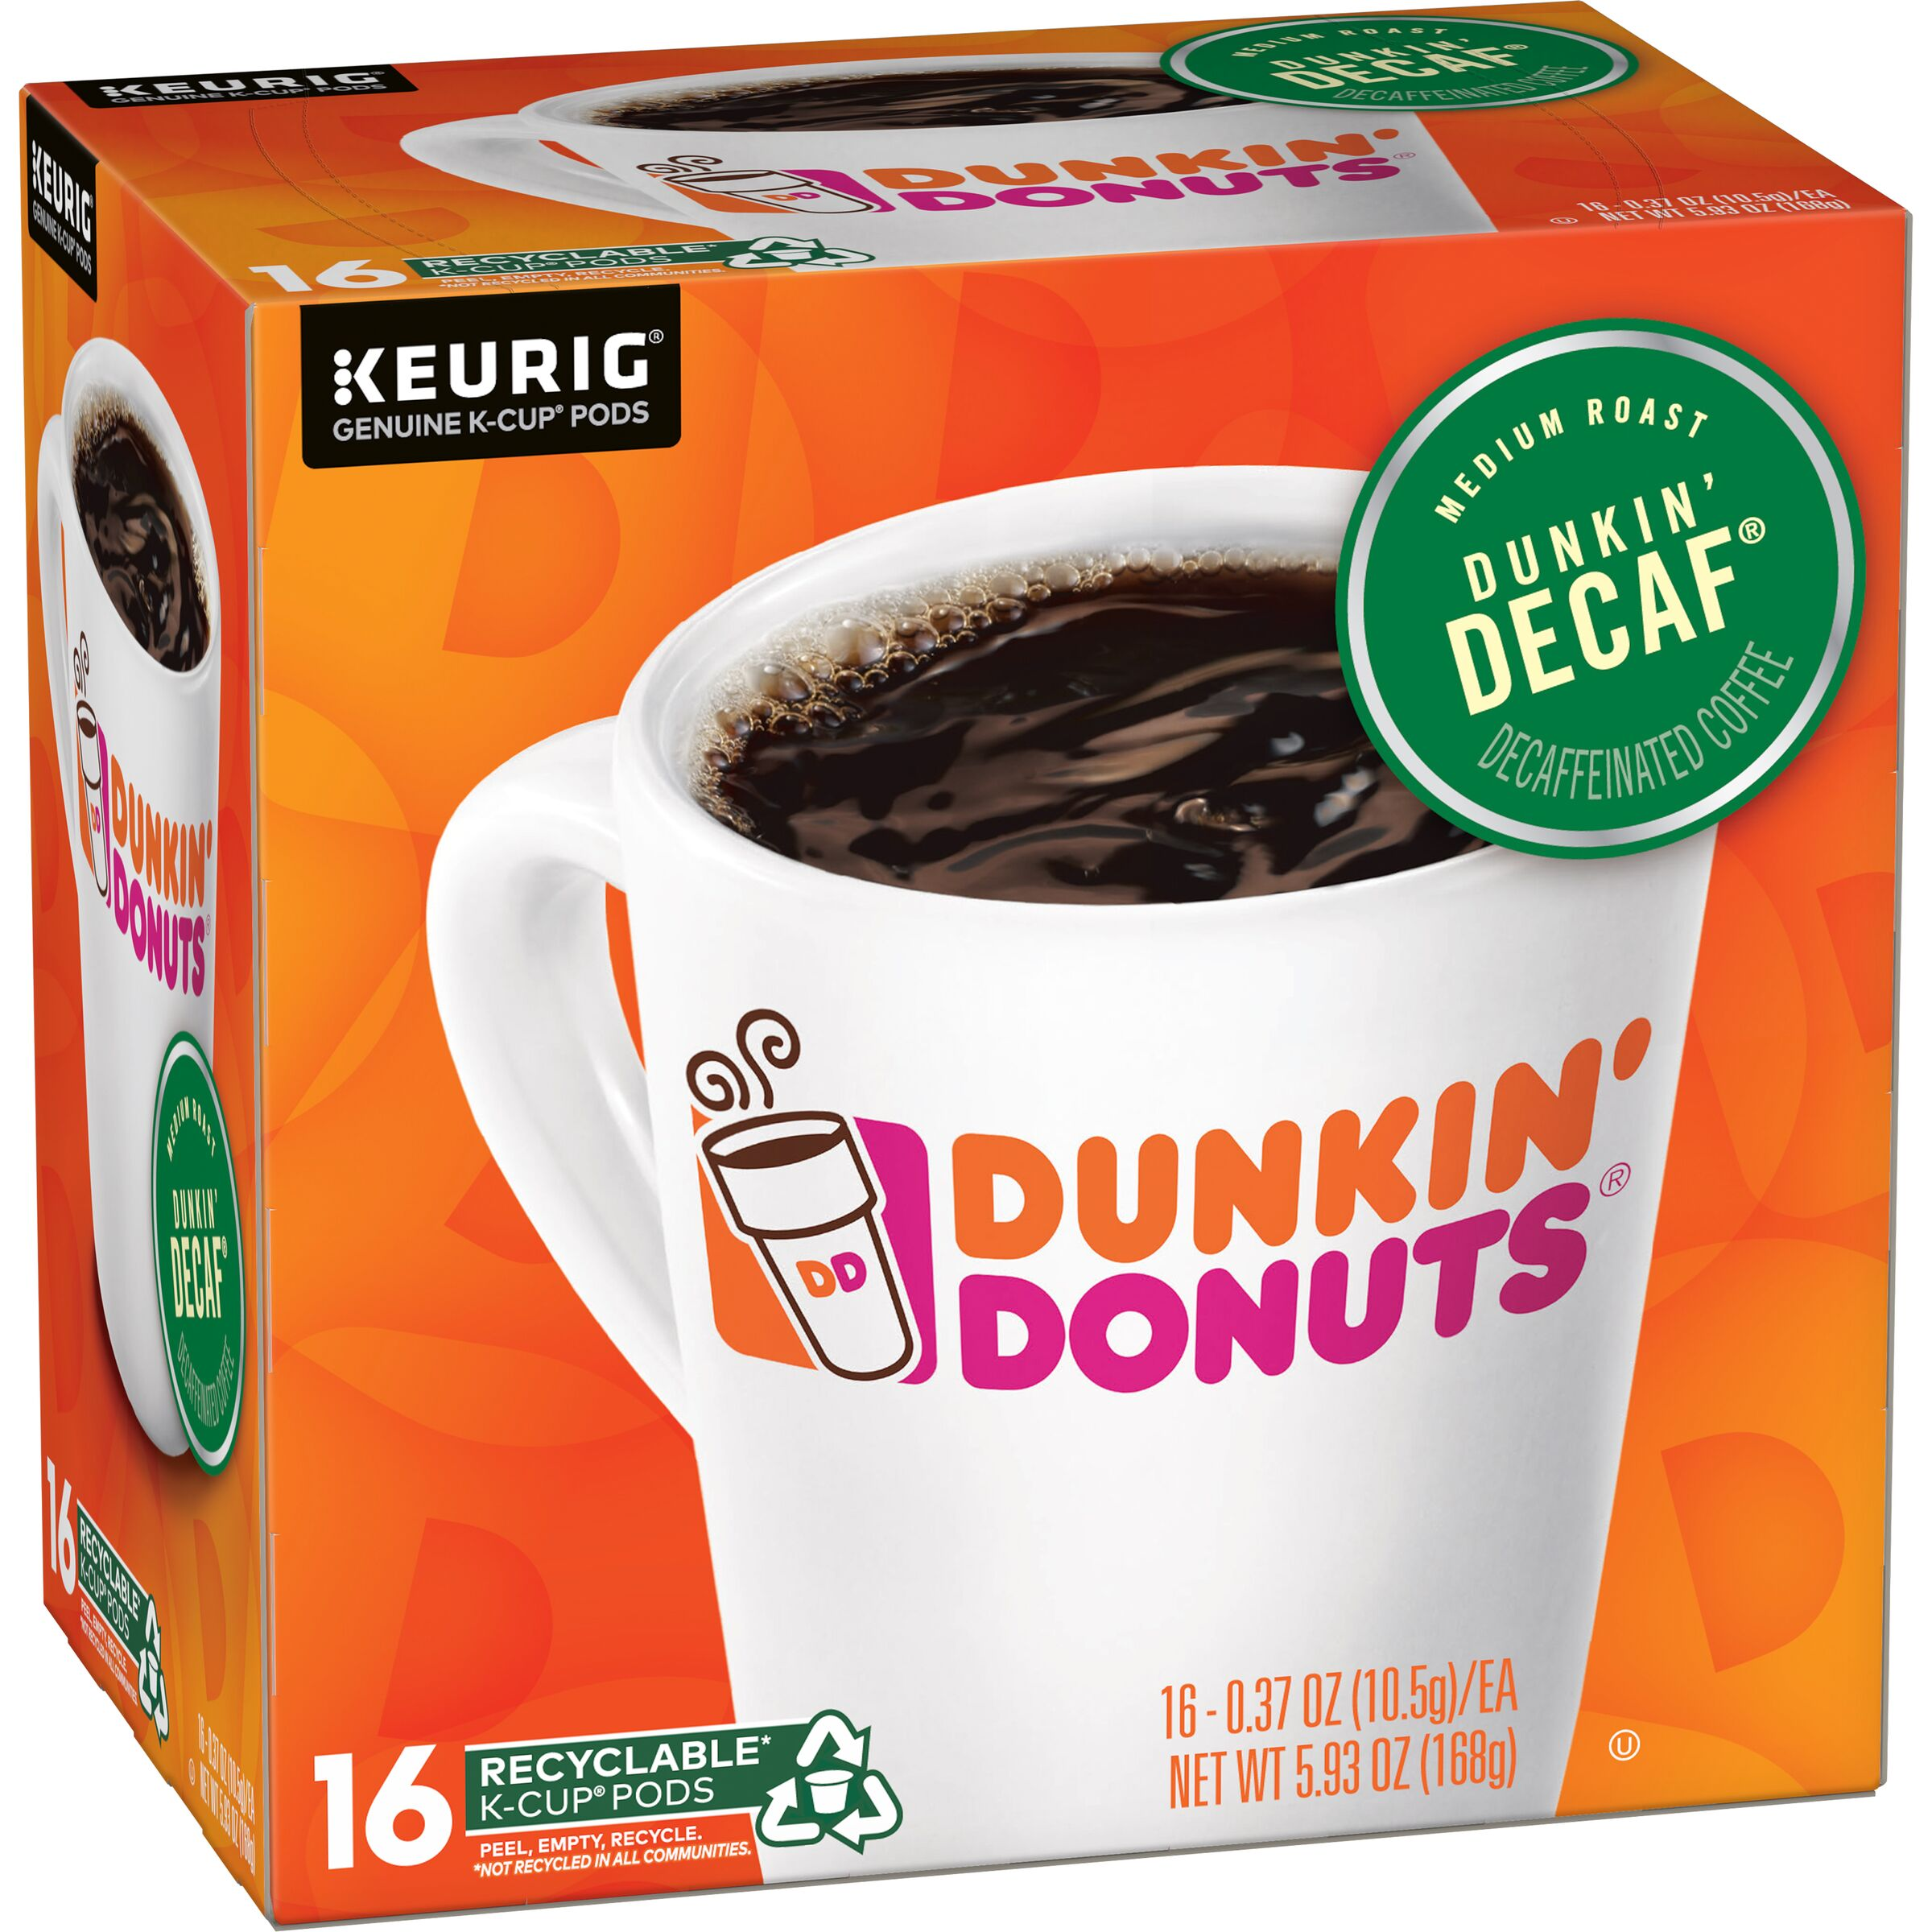 Dunkin' Donuts  Dunkin' Decaf K-Cup Pods, 16 Count